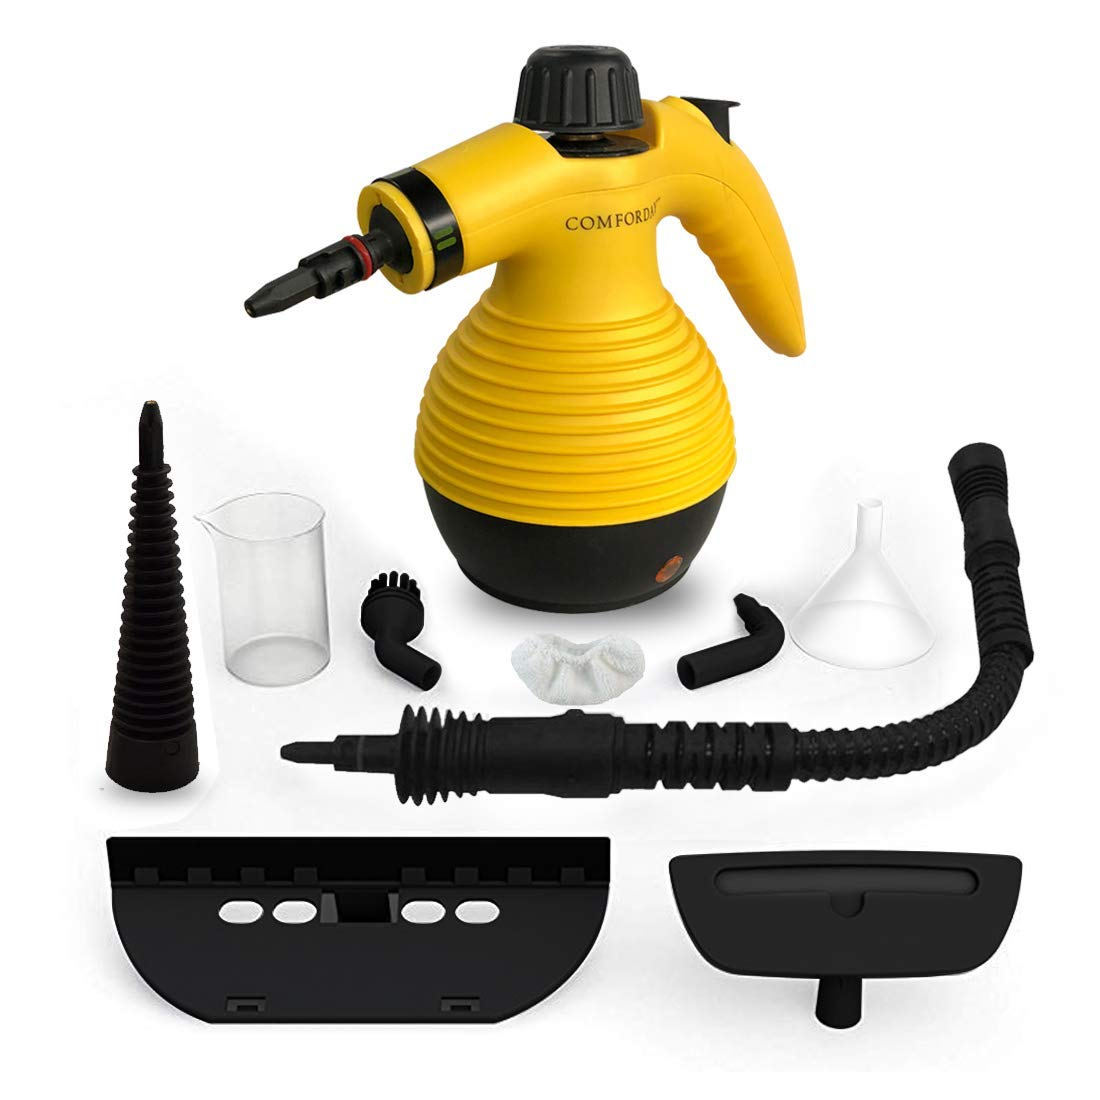 Comforday Surface & Much Multi-Purpose Handheld Pressurized Steam Cleaner with 9 Piece Accessories for Stain Removal, Carpets, Curtains, Car Seats, Kitchen Surface and Much More (Yellow) by Comforday